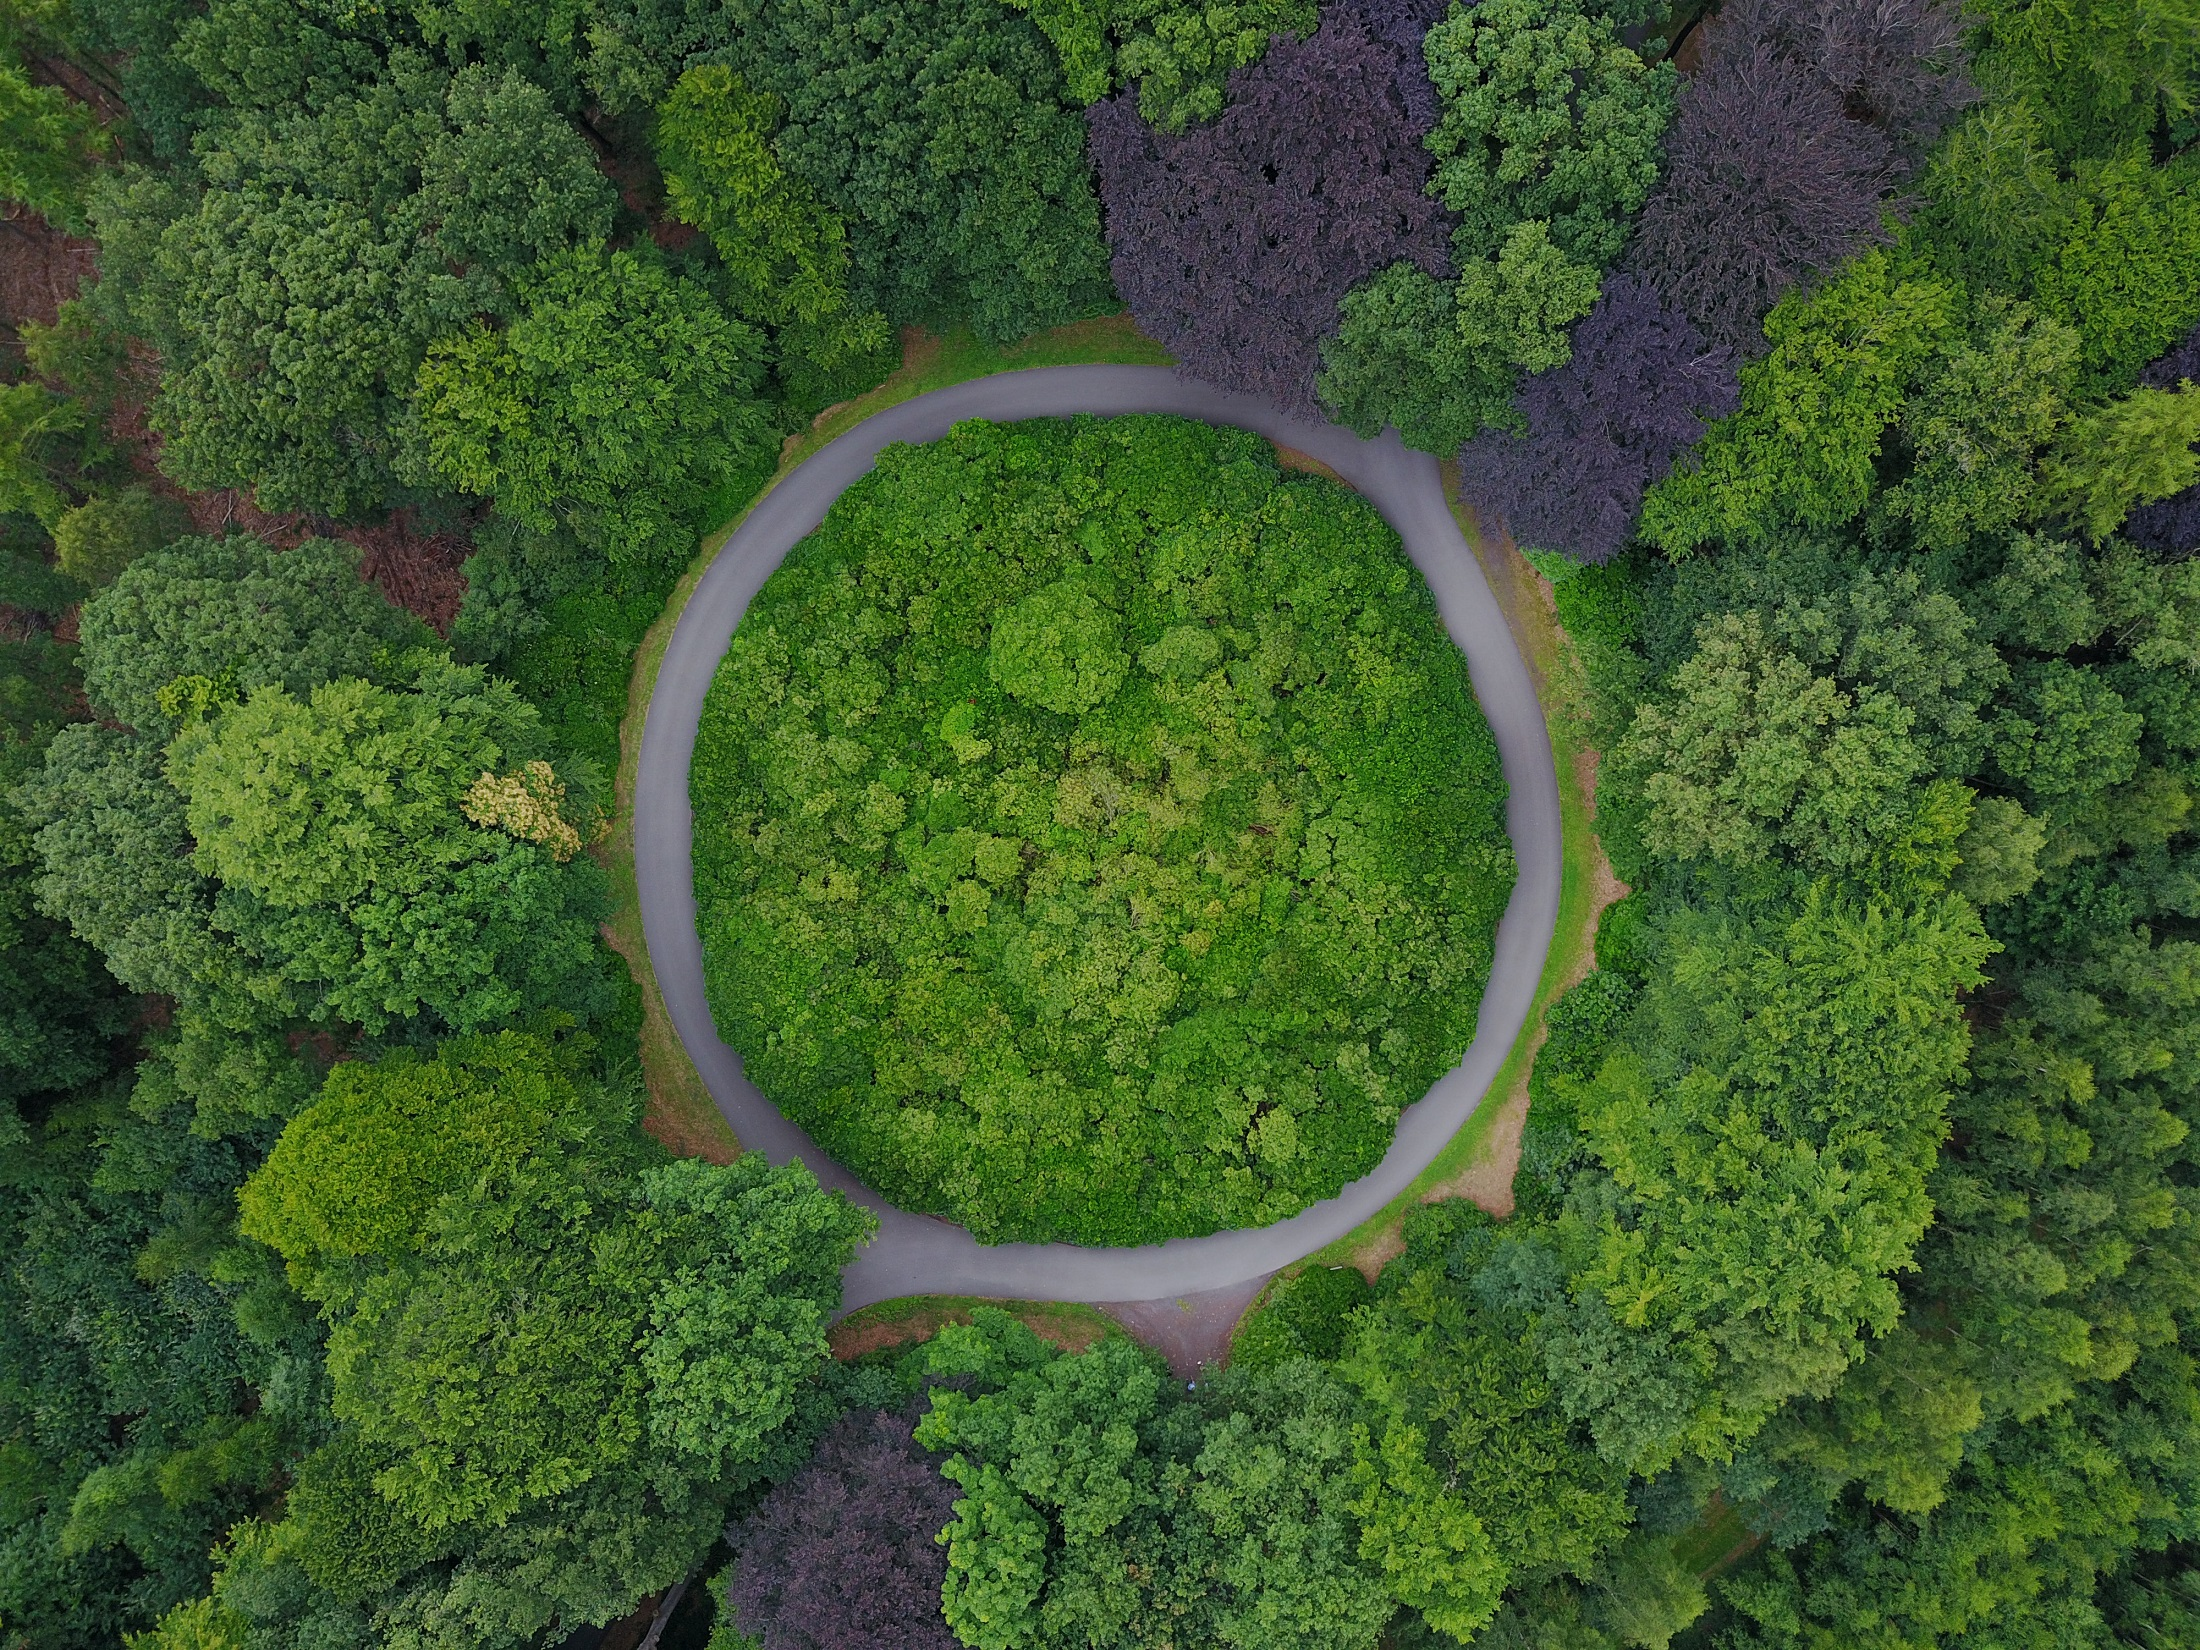 Trees and a roundabout. TNF and Spinnova hope to use the tree-derived fiber to inspire a more circular green economy.